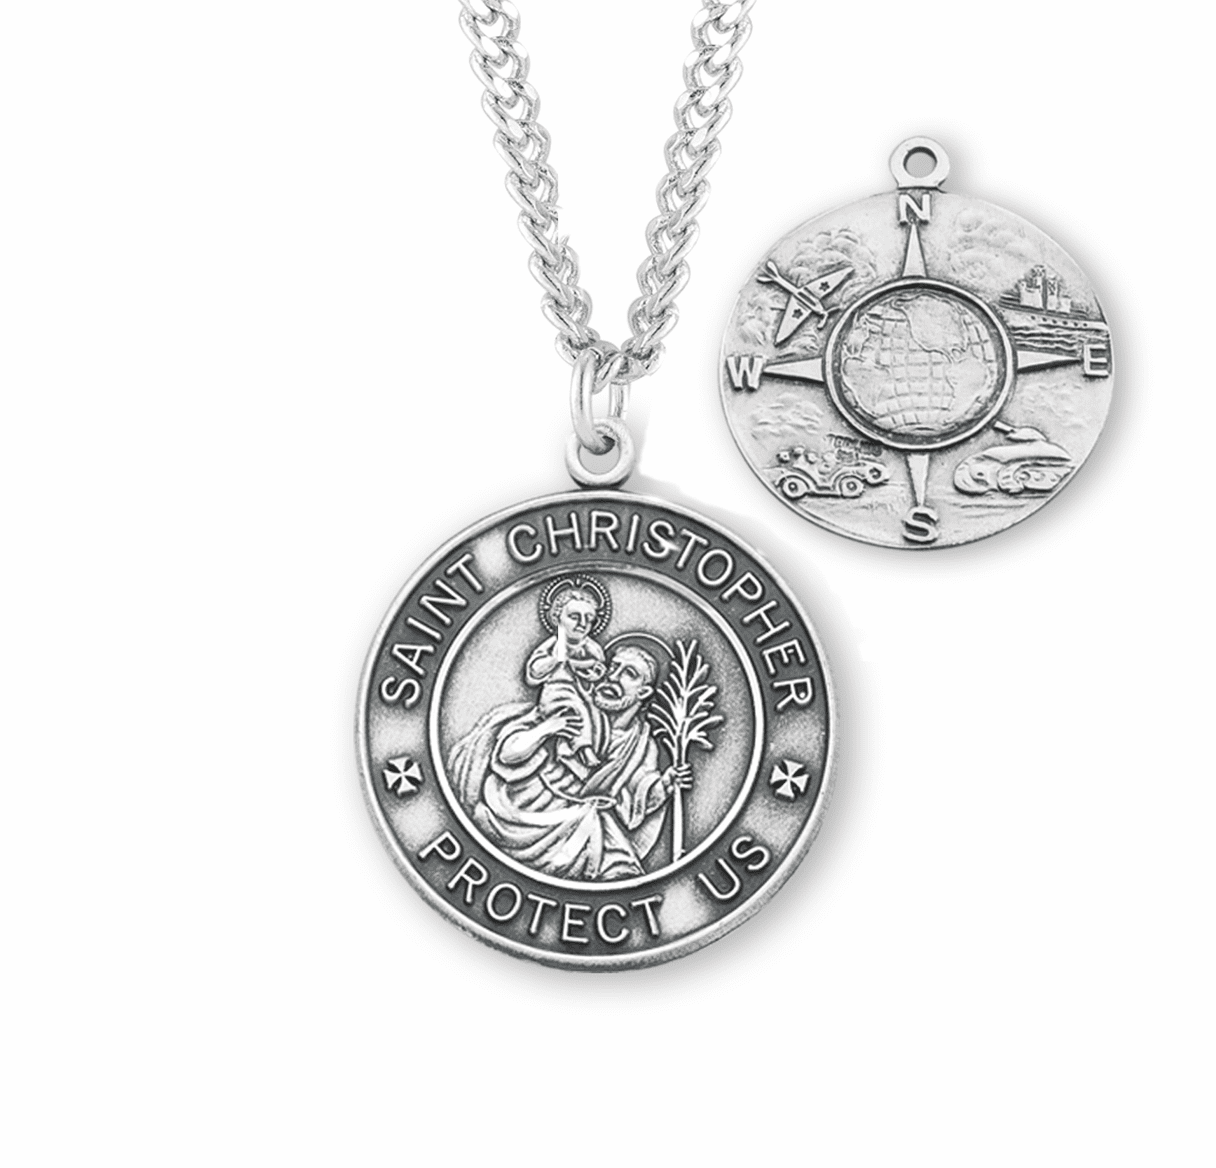 HMH Religious St Christopher Air, Land & Sea Military Sterling Silver Medal